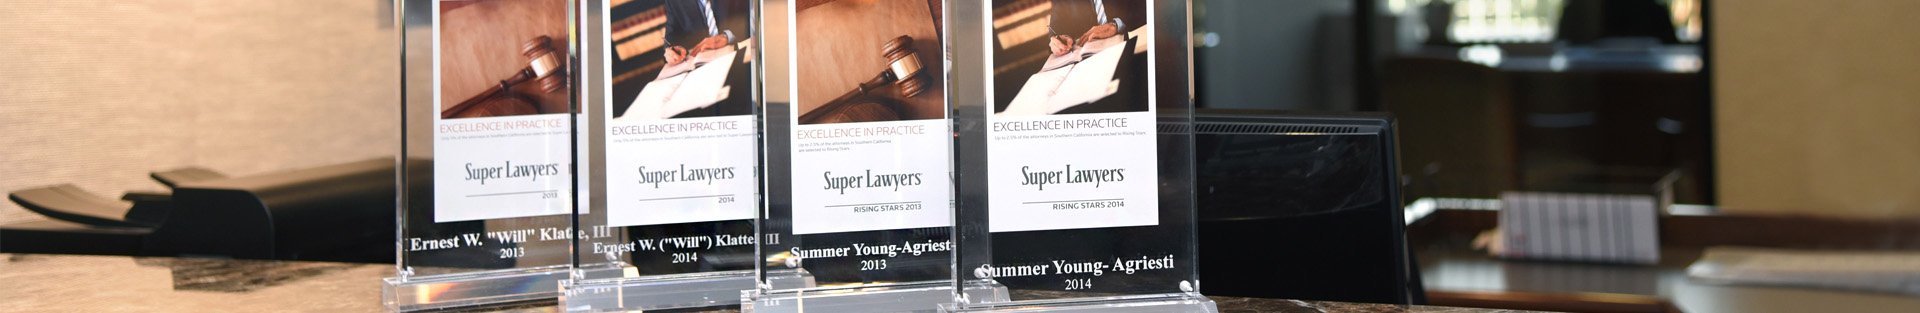 KBY Super Lawyer plaques